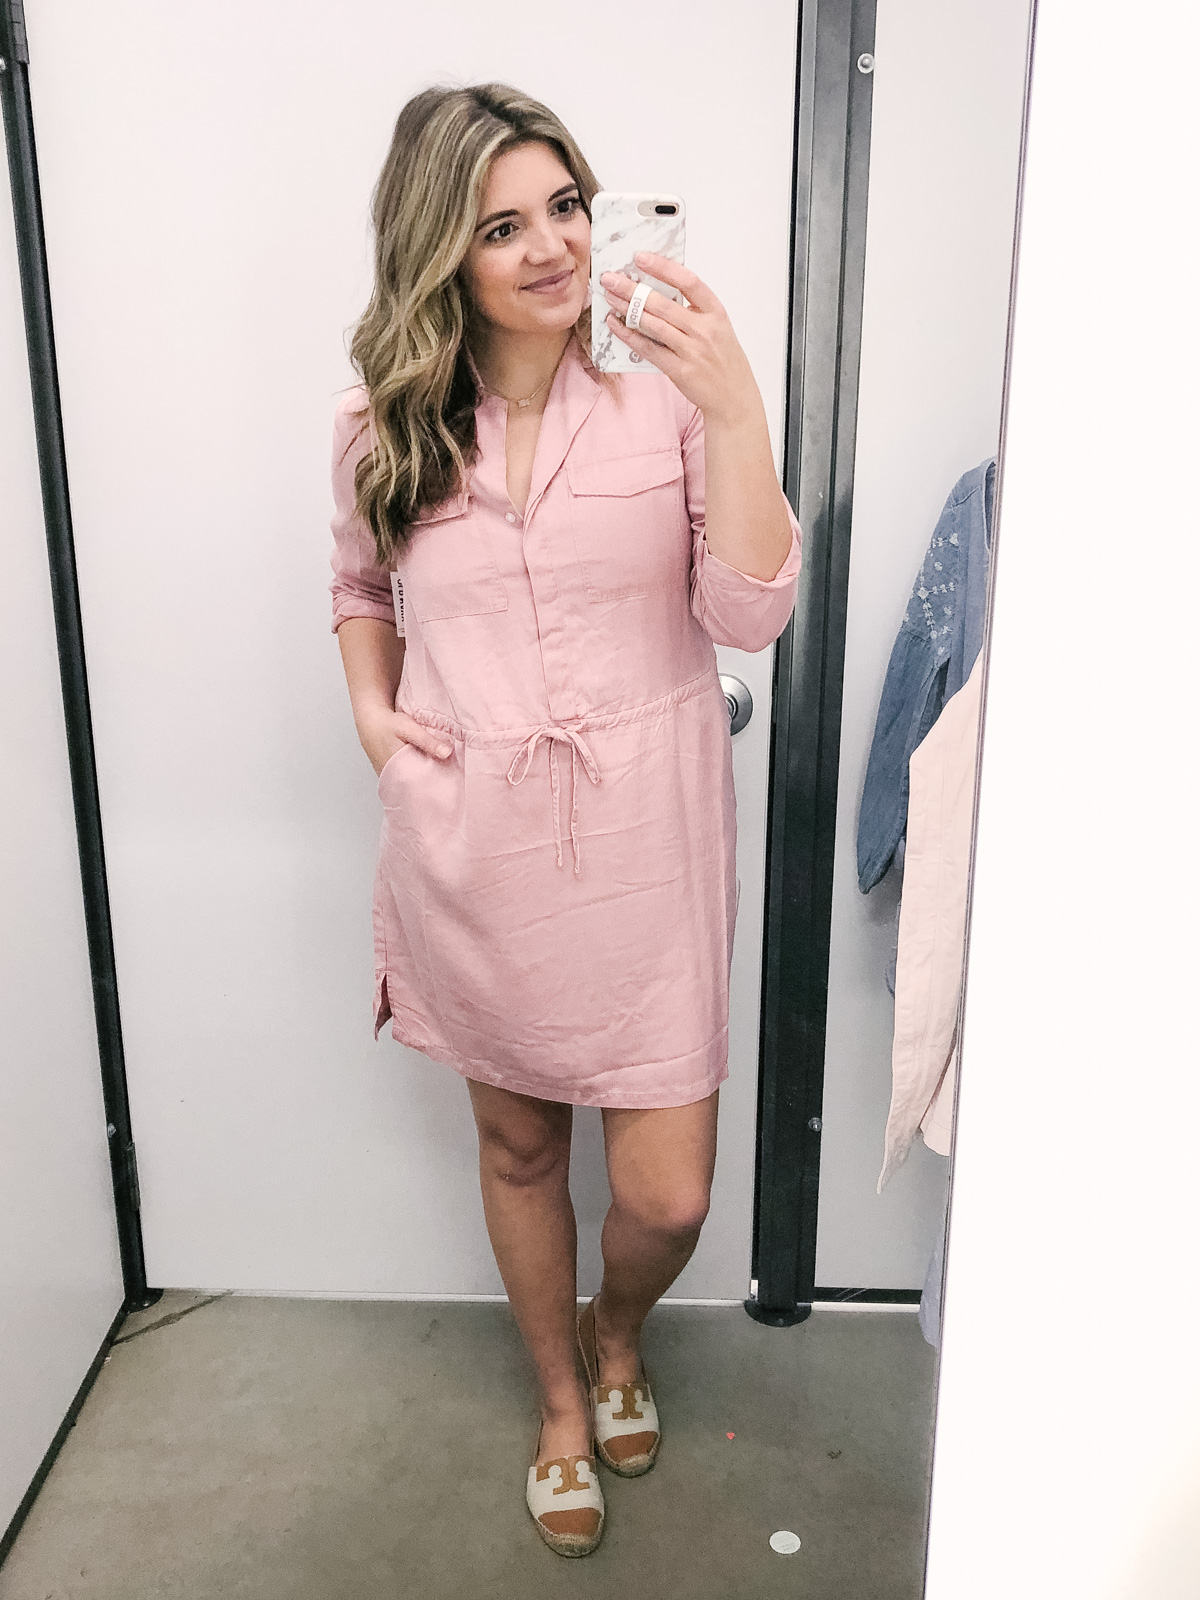 old navy try-on session - old navy spring 2018 | See the full try-on session + Old Navy spring reviews at bylaurenm.com!